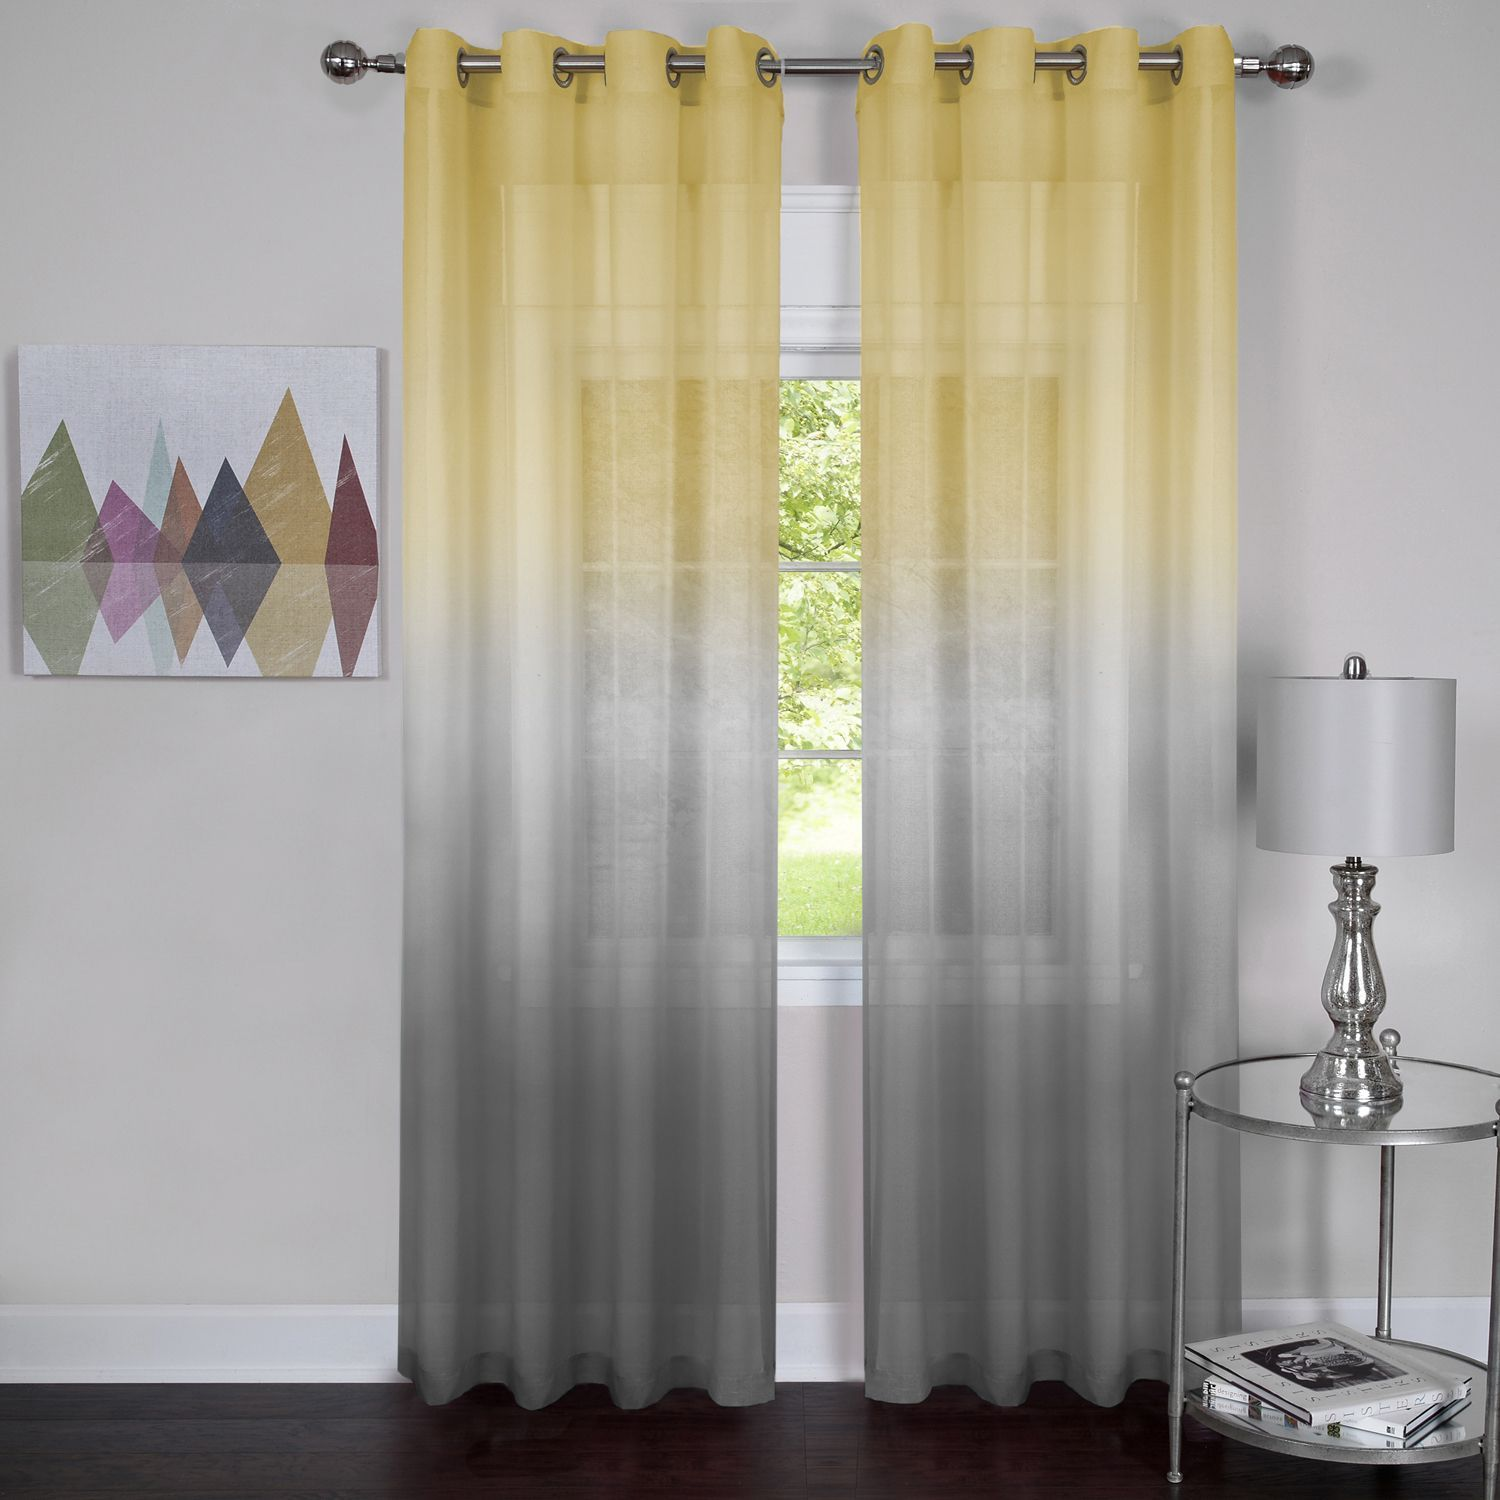 This Semi Sheer Curtain Panel Comes In Two Different Ombre Patterns. The  Yellow To Grey